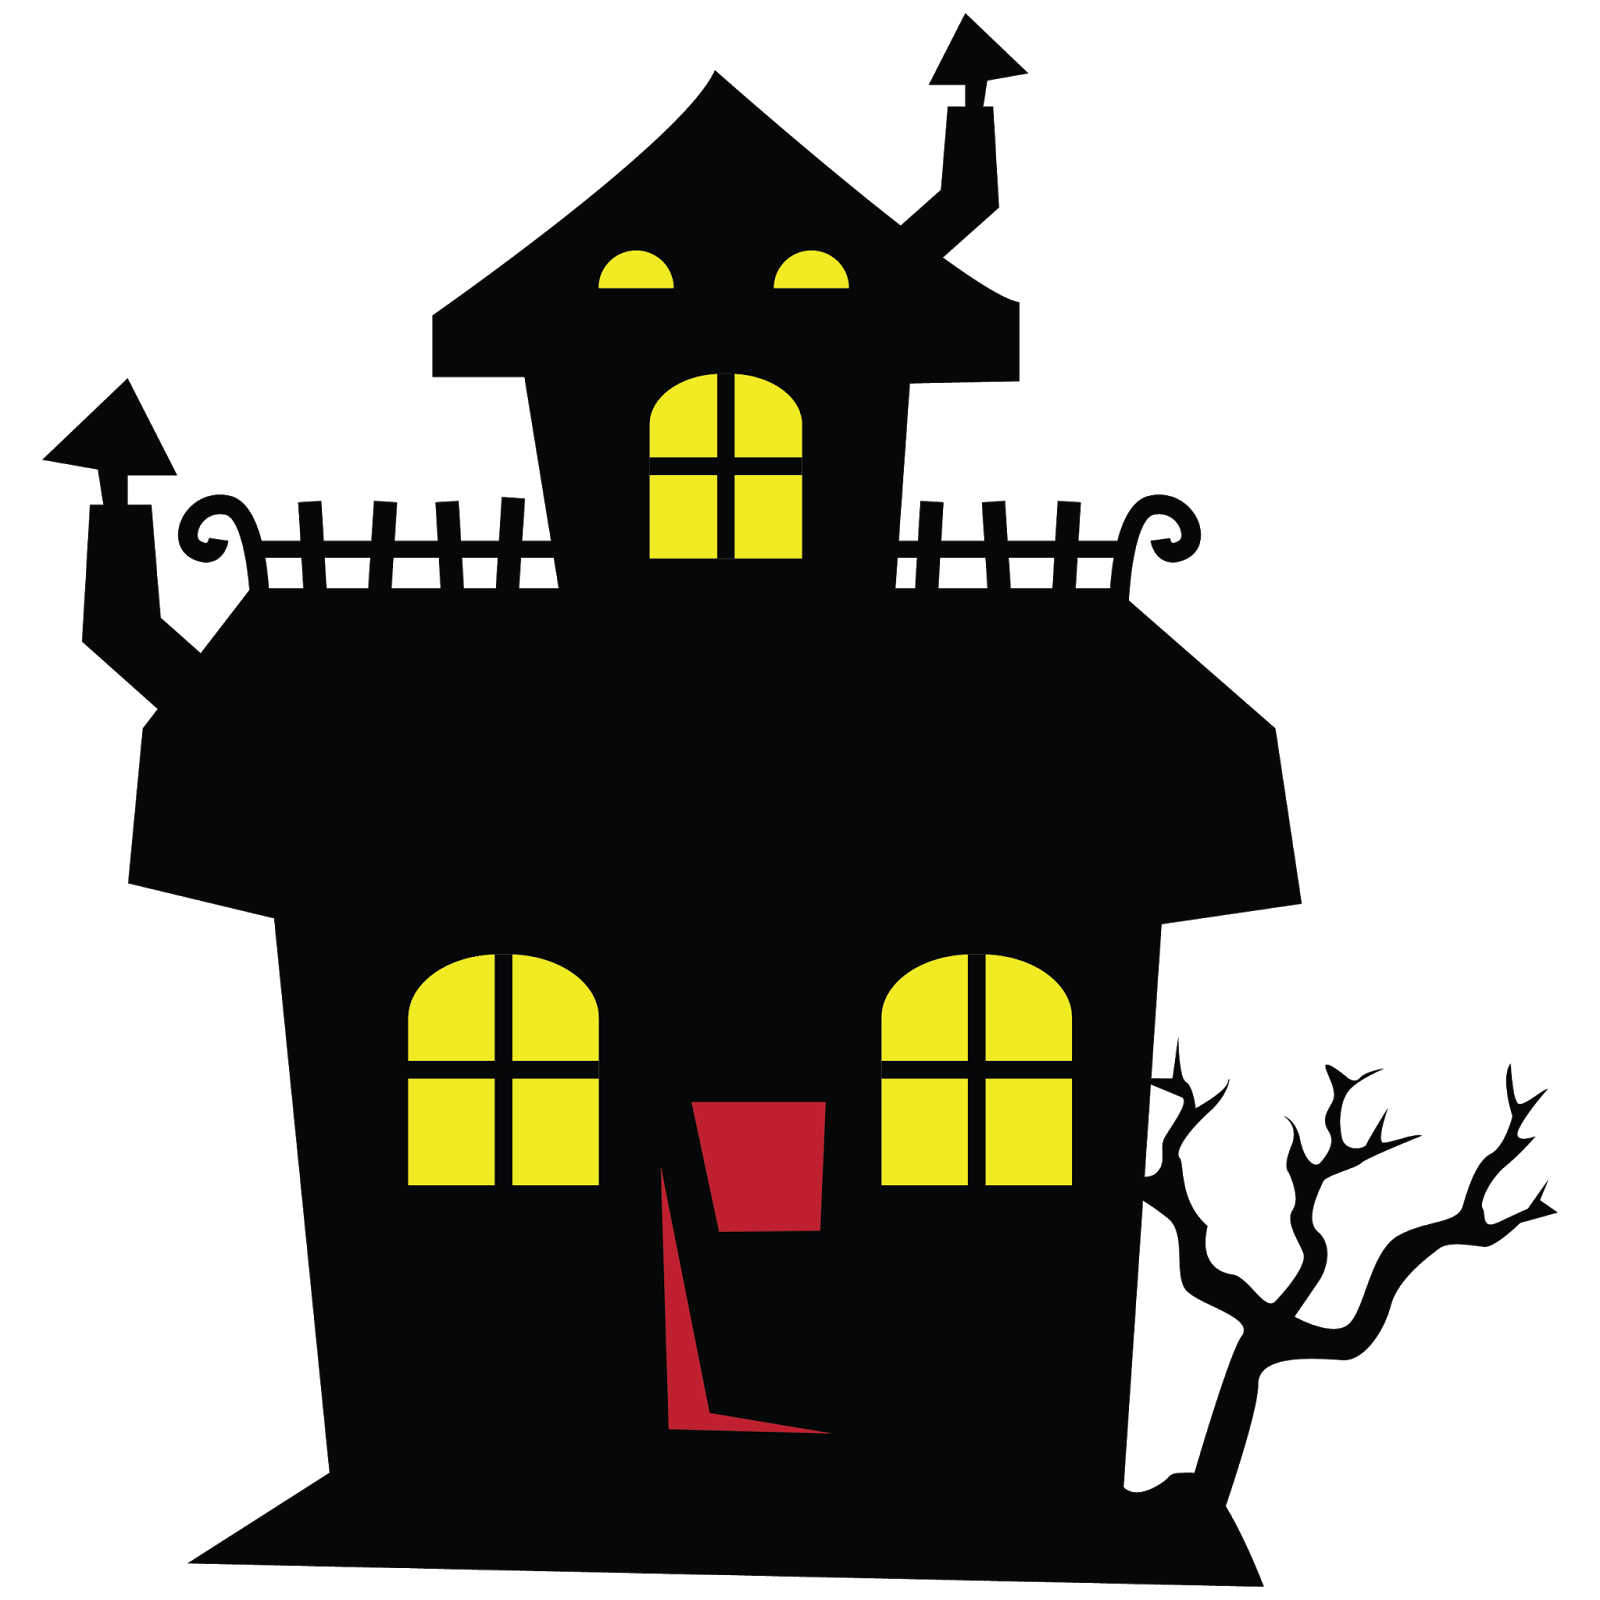 Clipart haunted house images - ClipartFe-Clipart haunted house images - ClipartFest-12